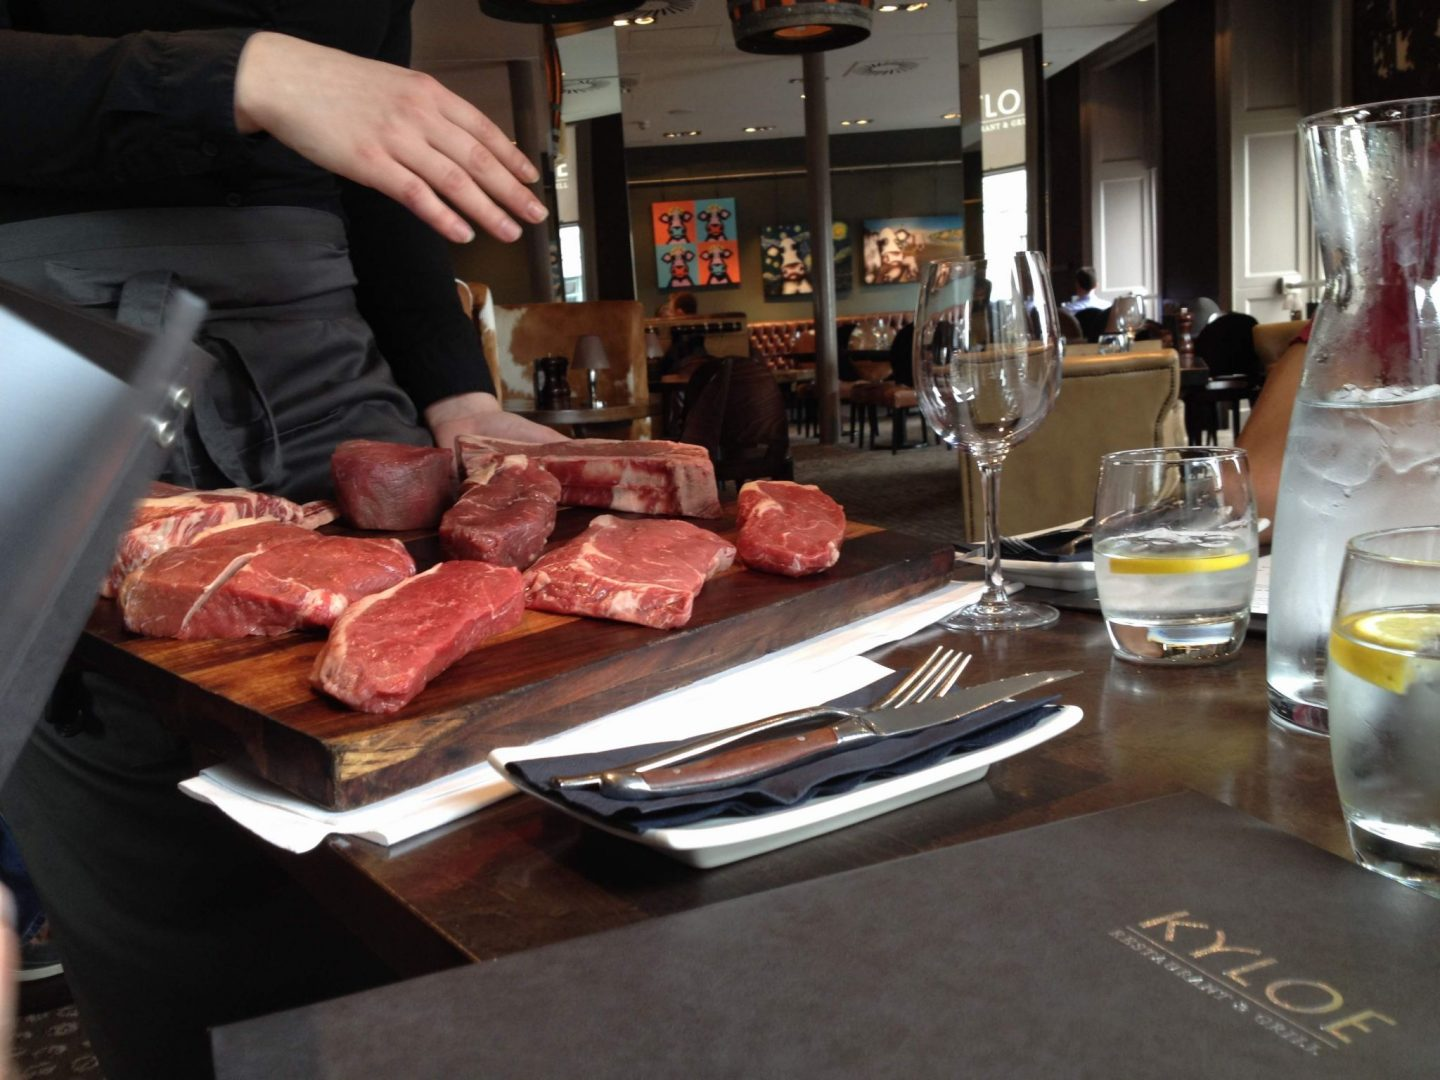 Different steaks on offer at Kyloe